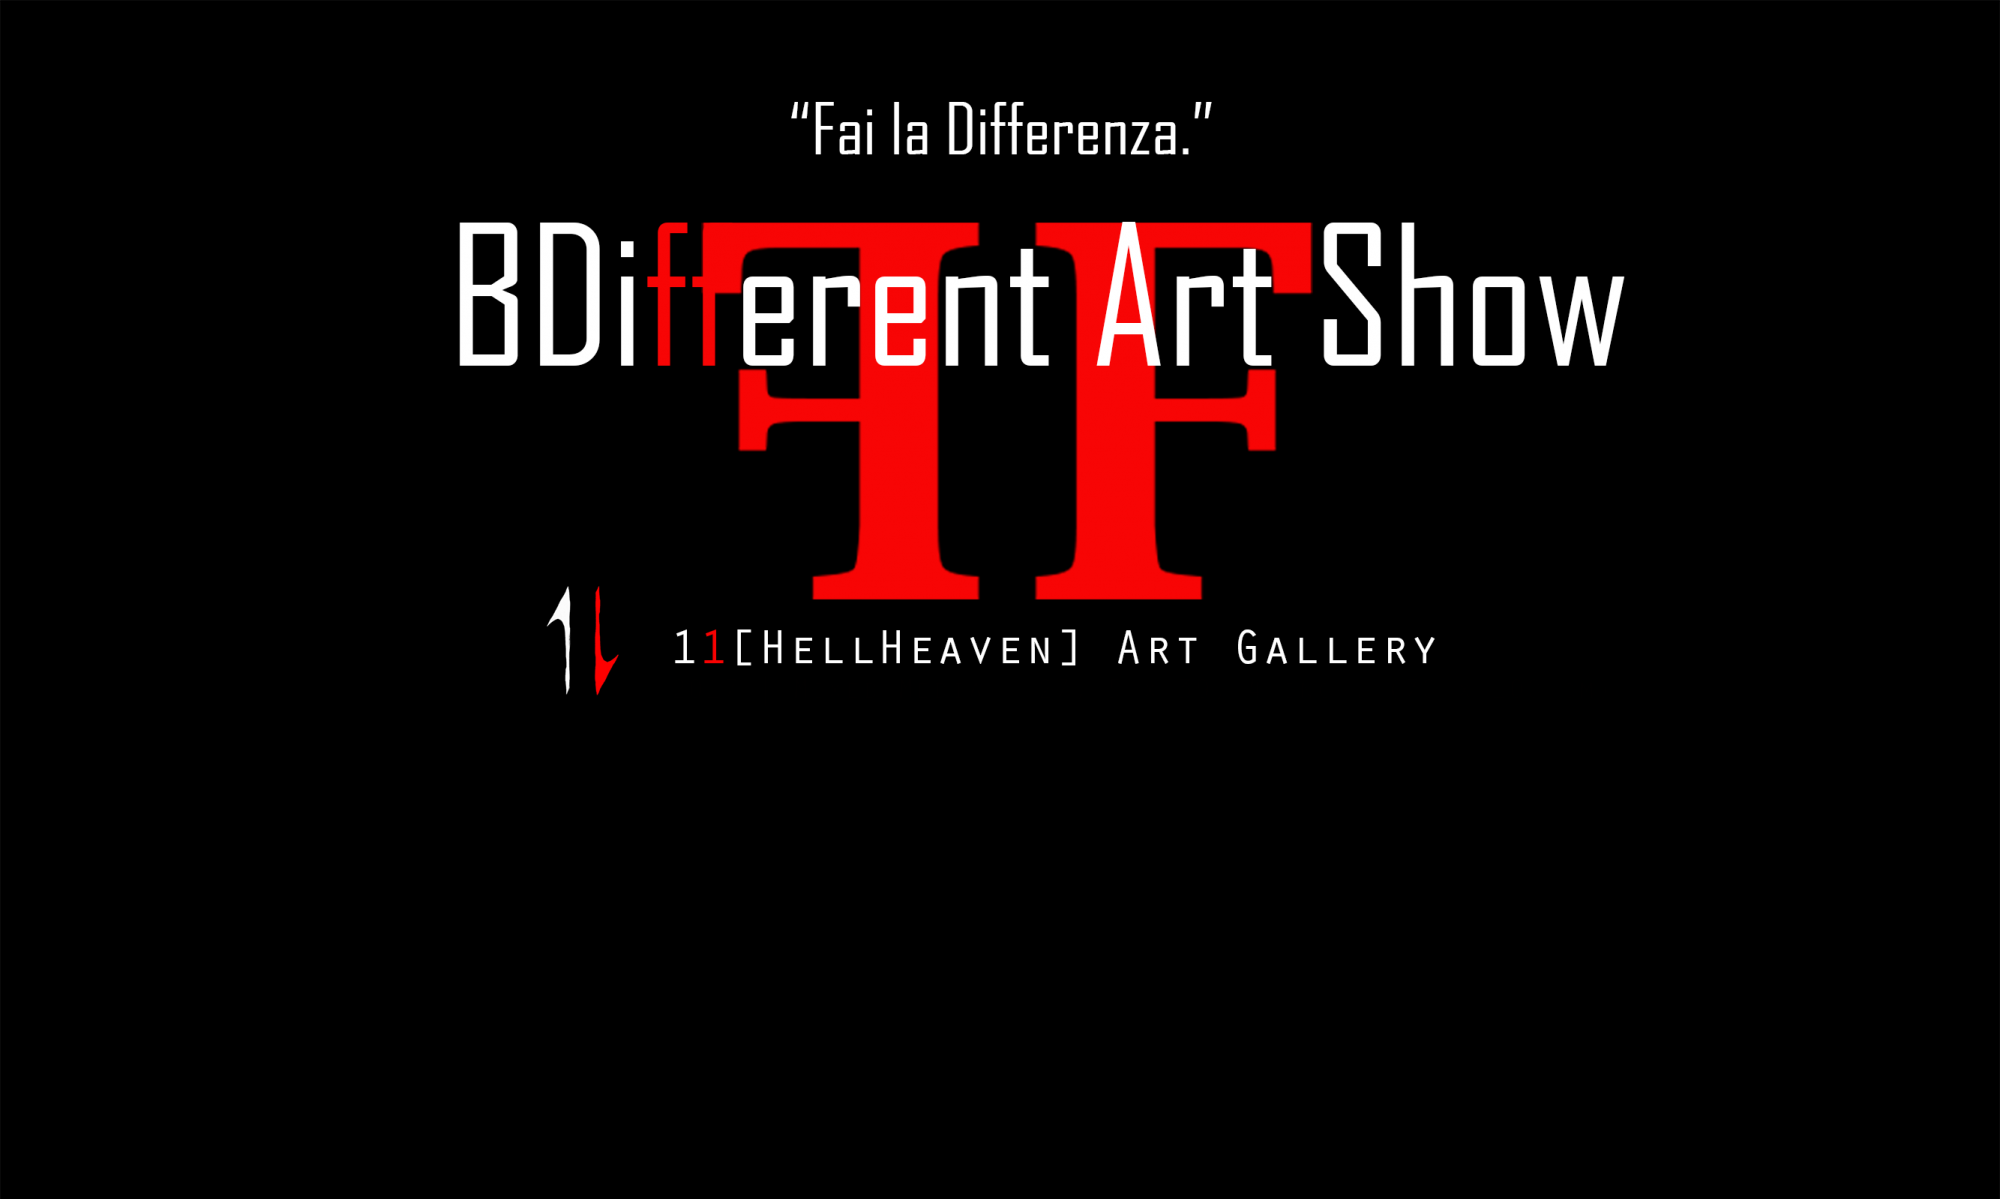 BDifferent Art Show